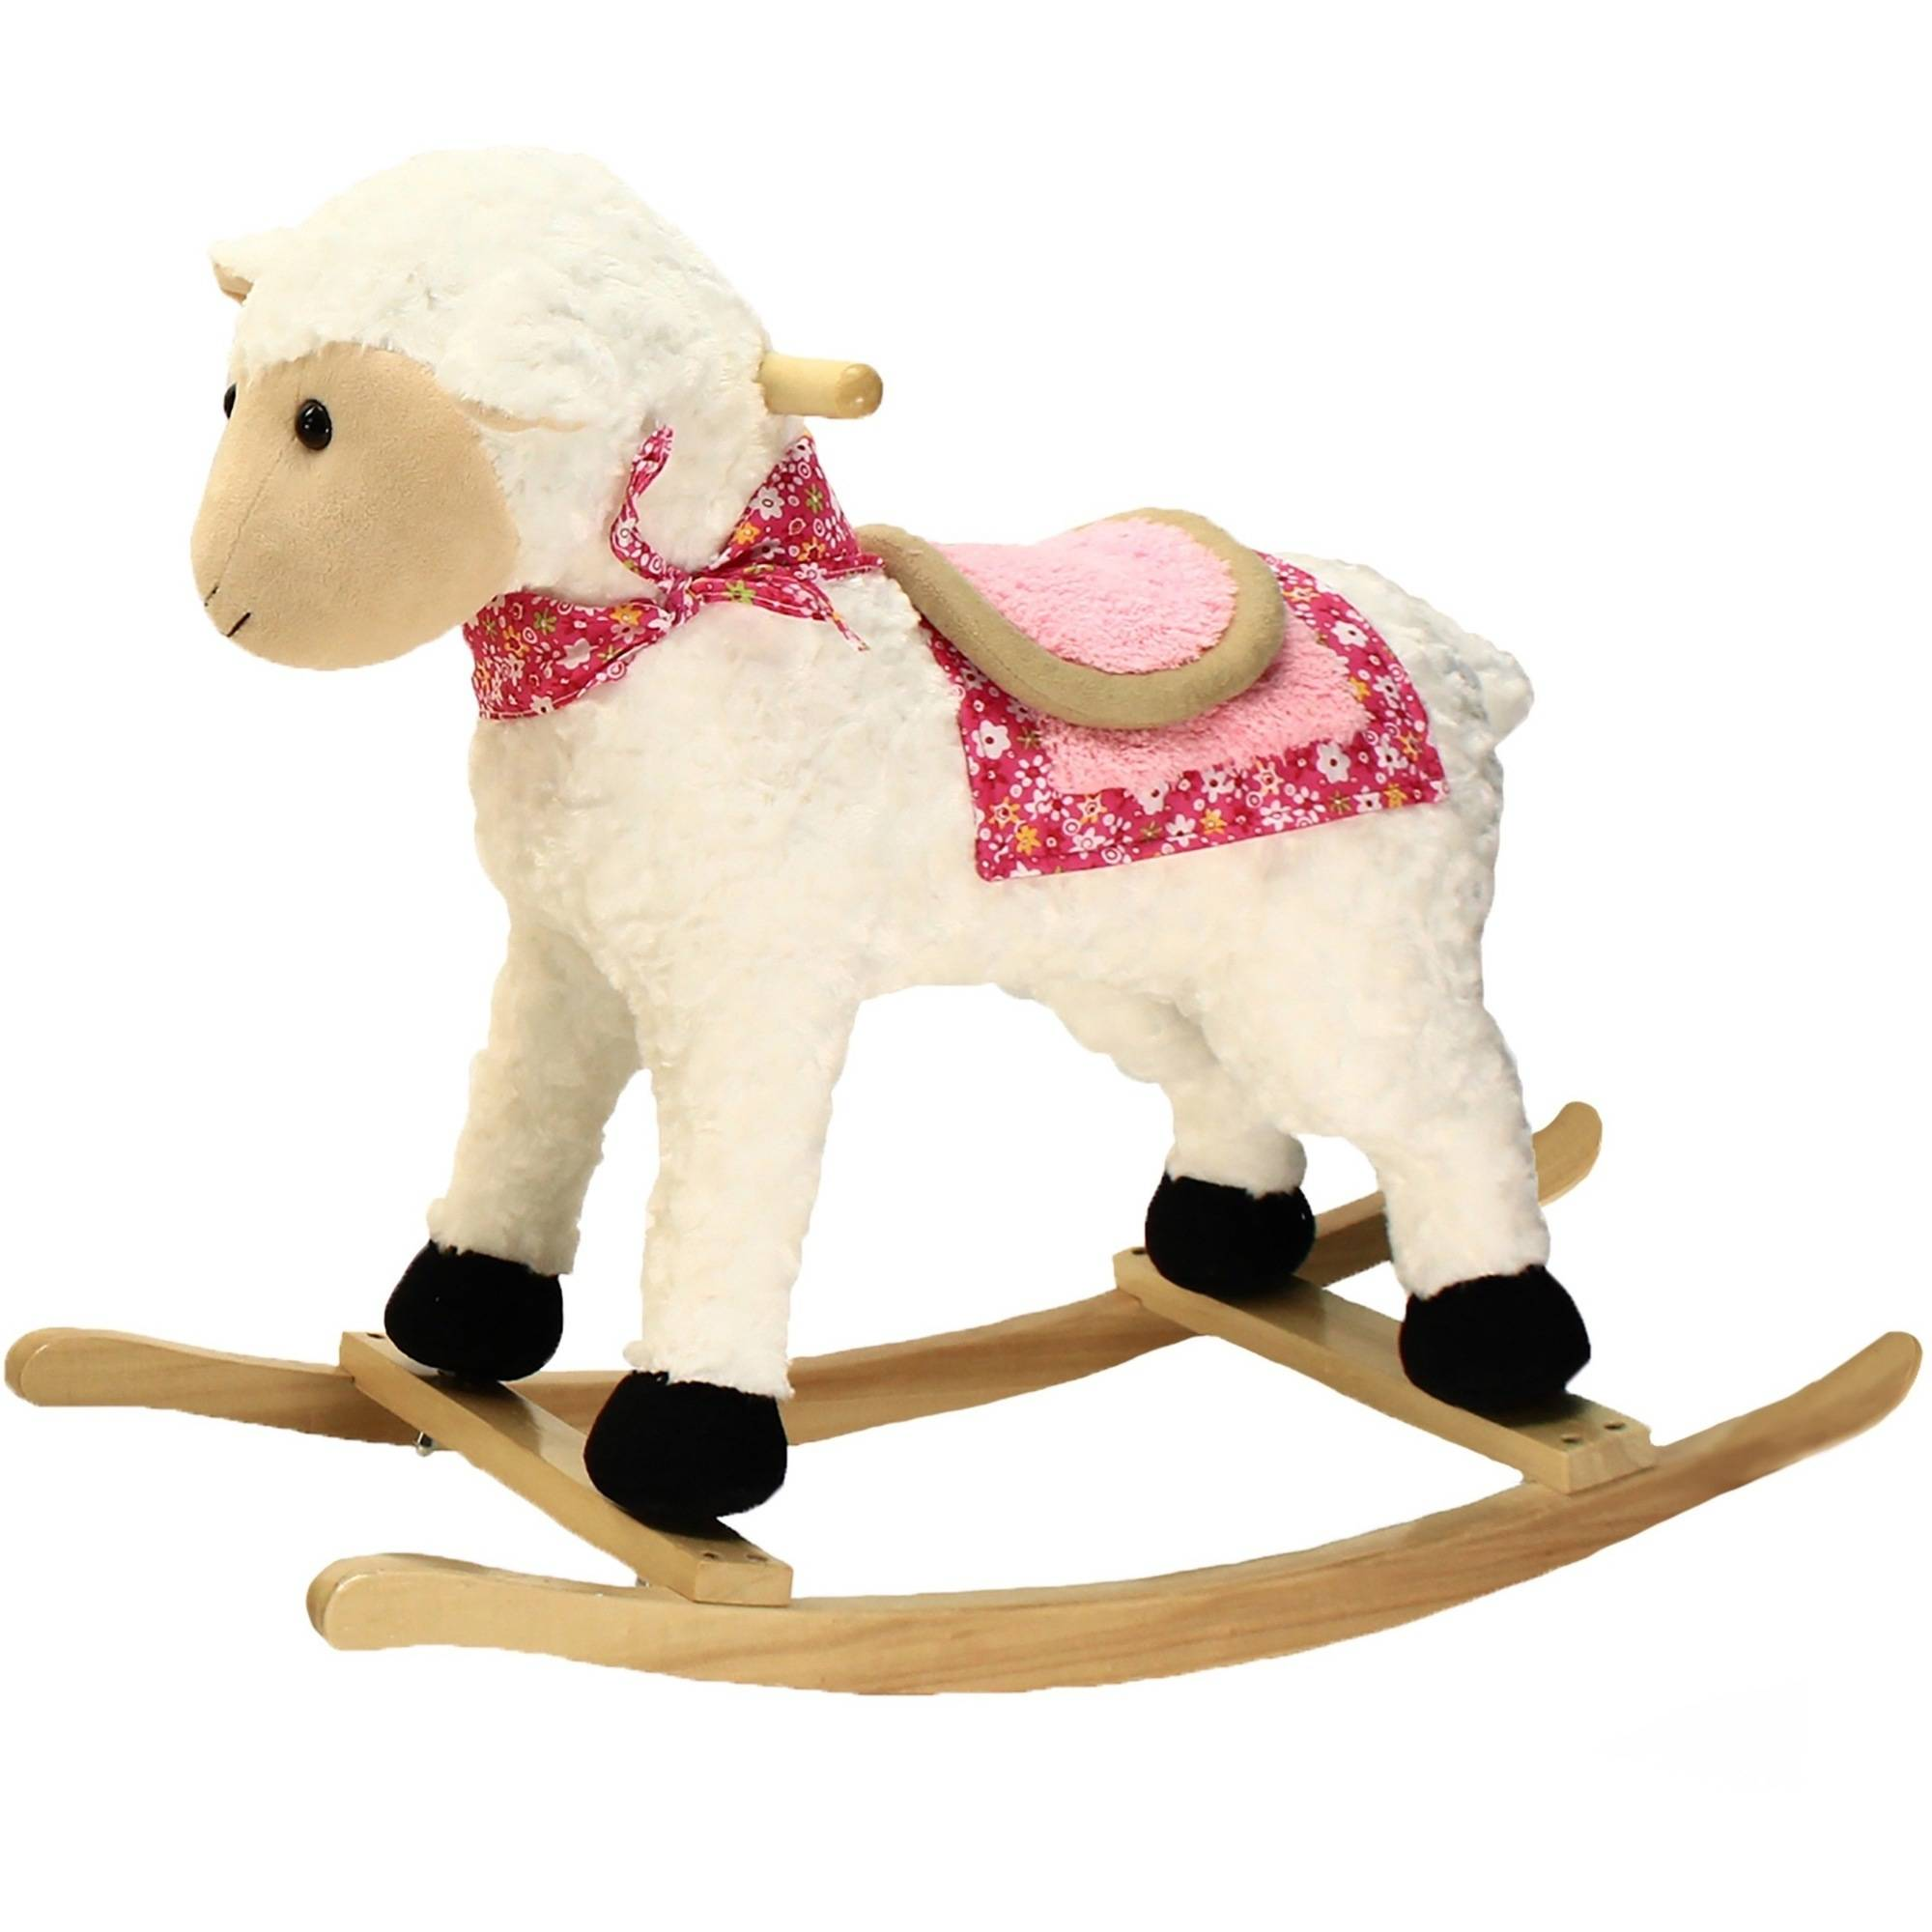 Animal Adventure Farm Rocker, Lamb by